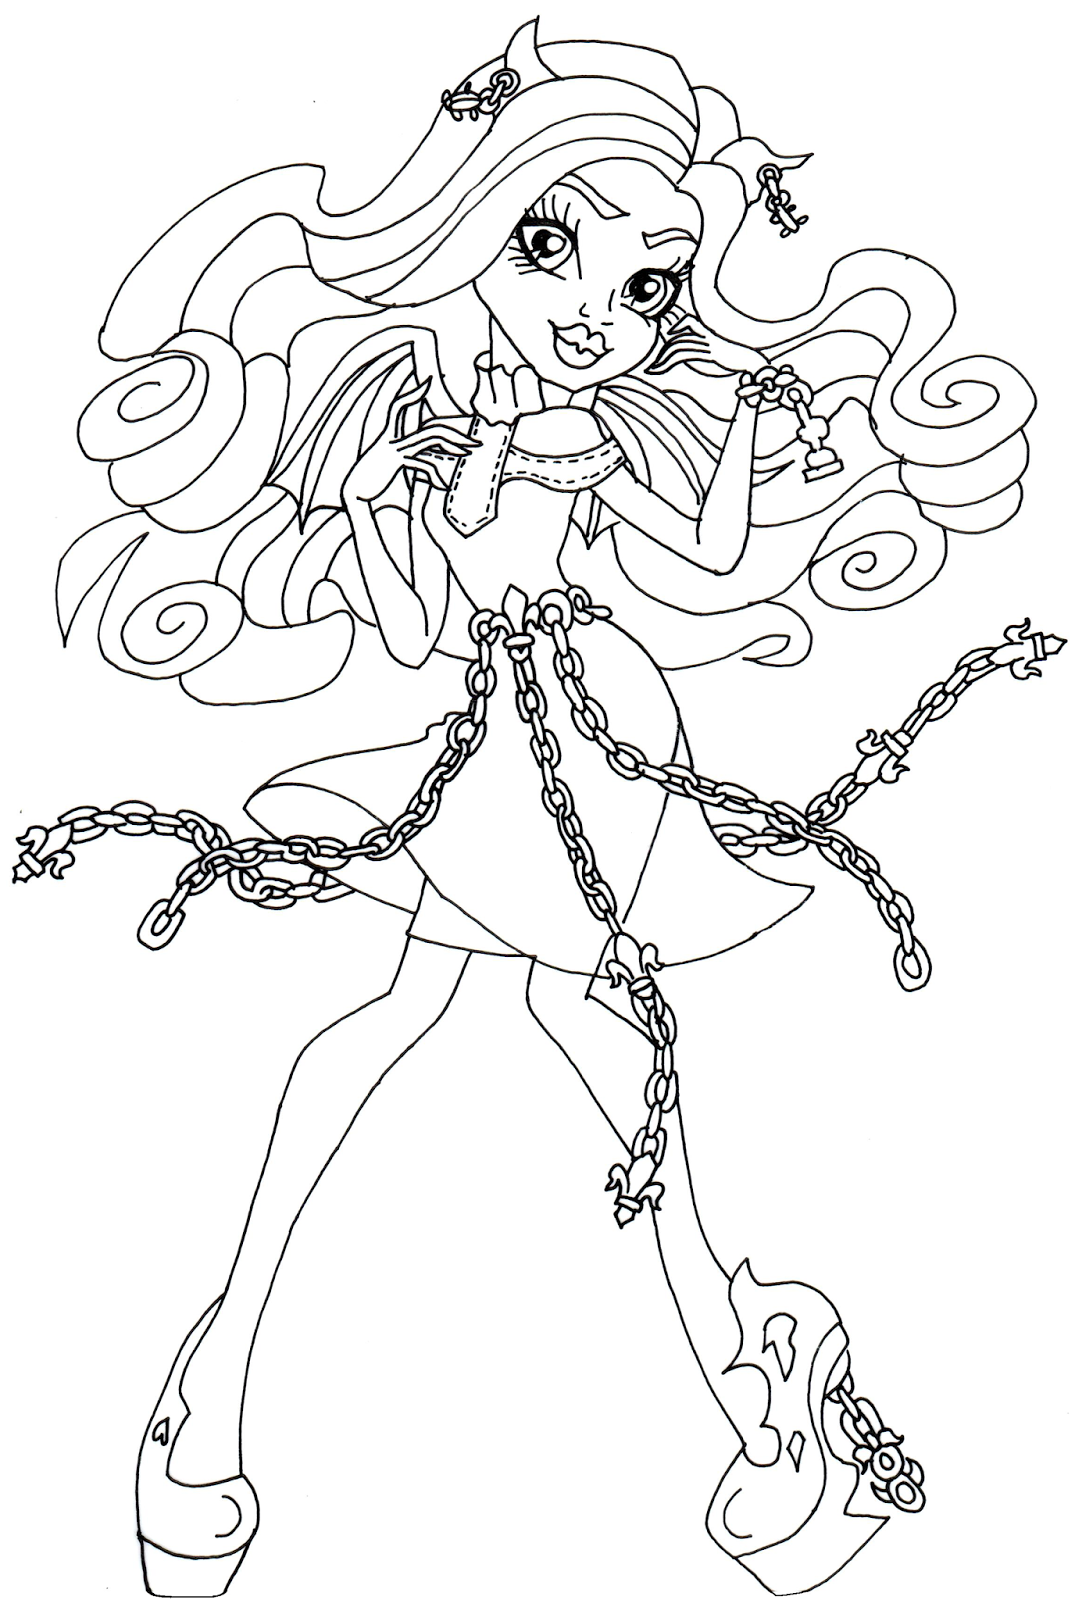 Free printable monster high coloring pages rochelle goyle for Free monster high coloring pages